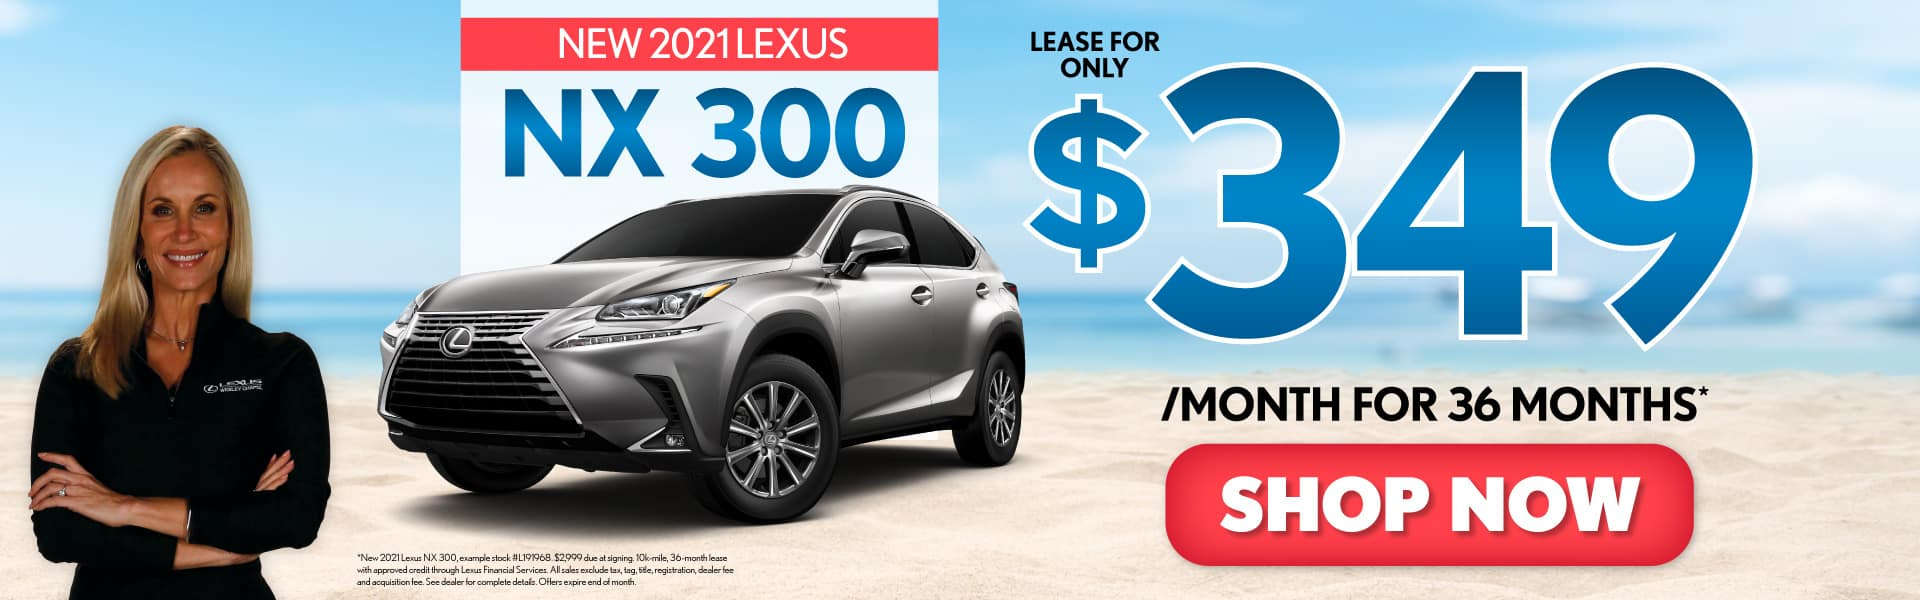 New 2021 Lexus NX 300 only $349/mo - ACT NOW